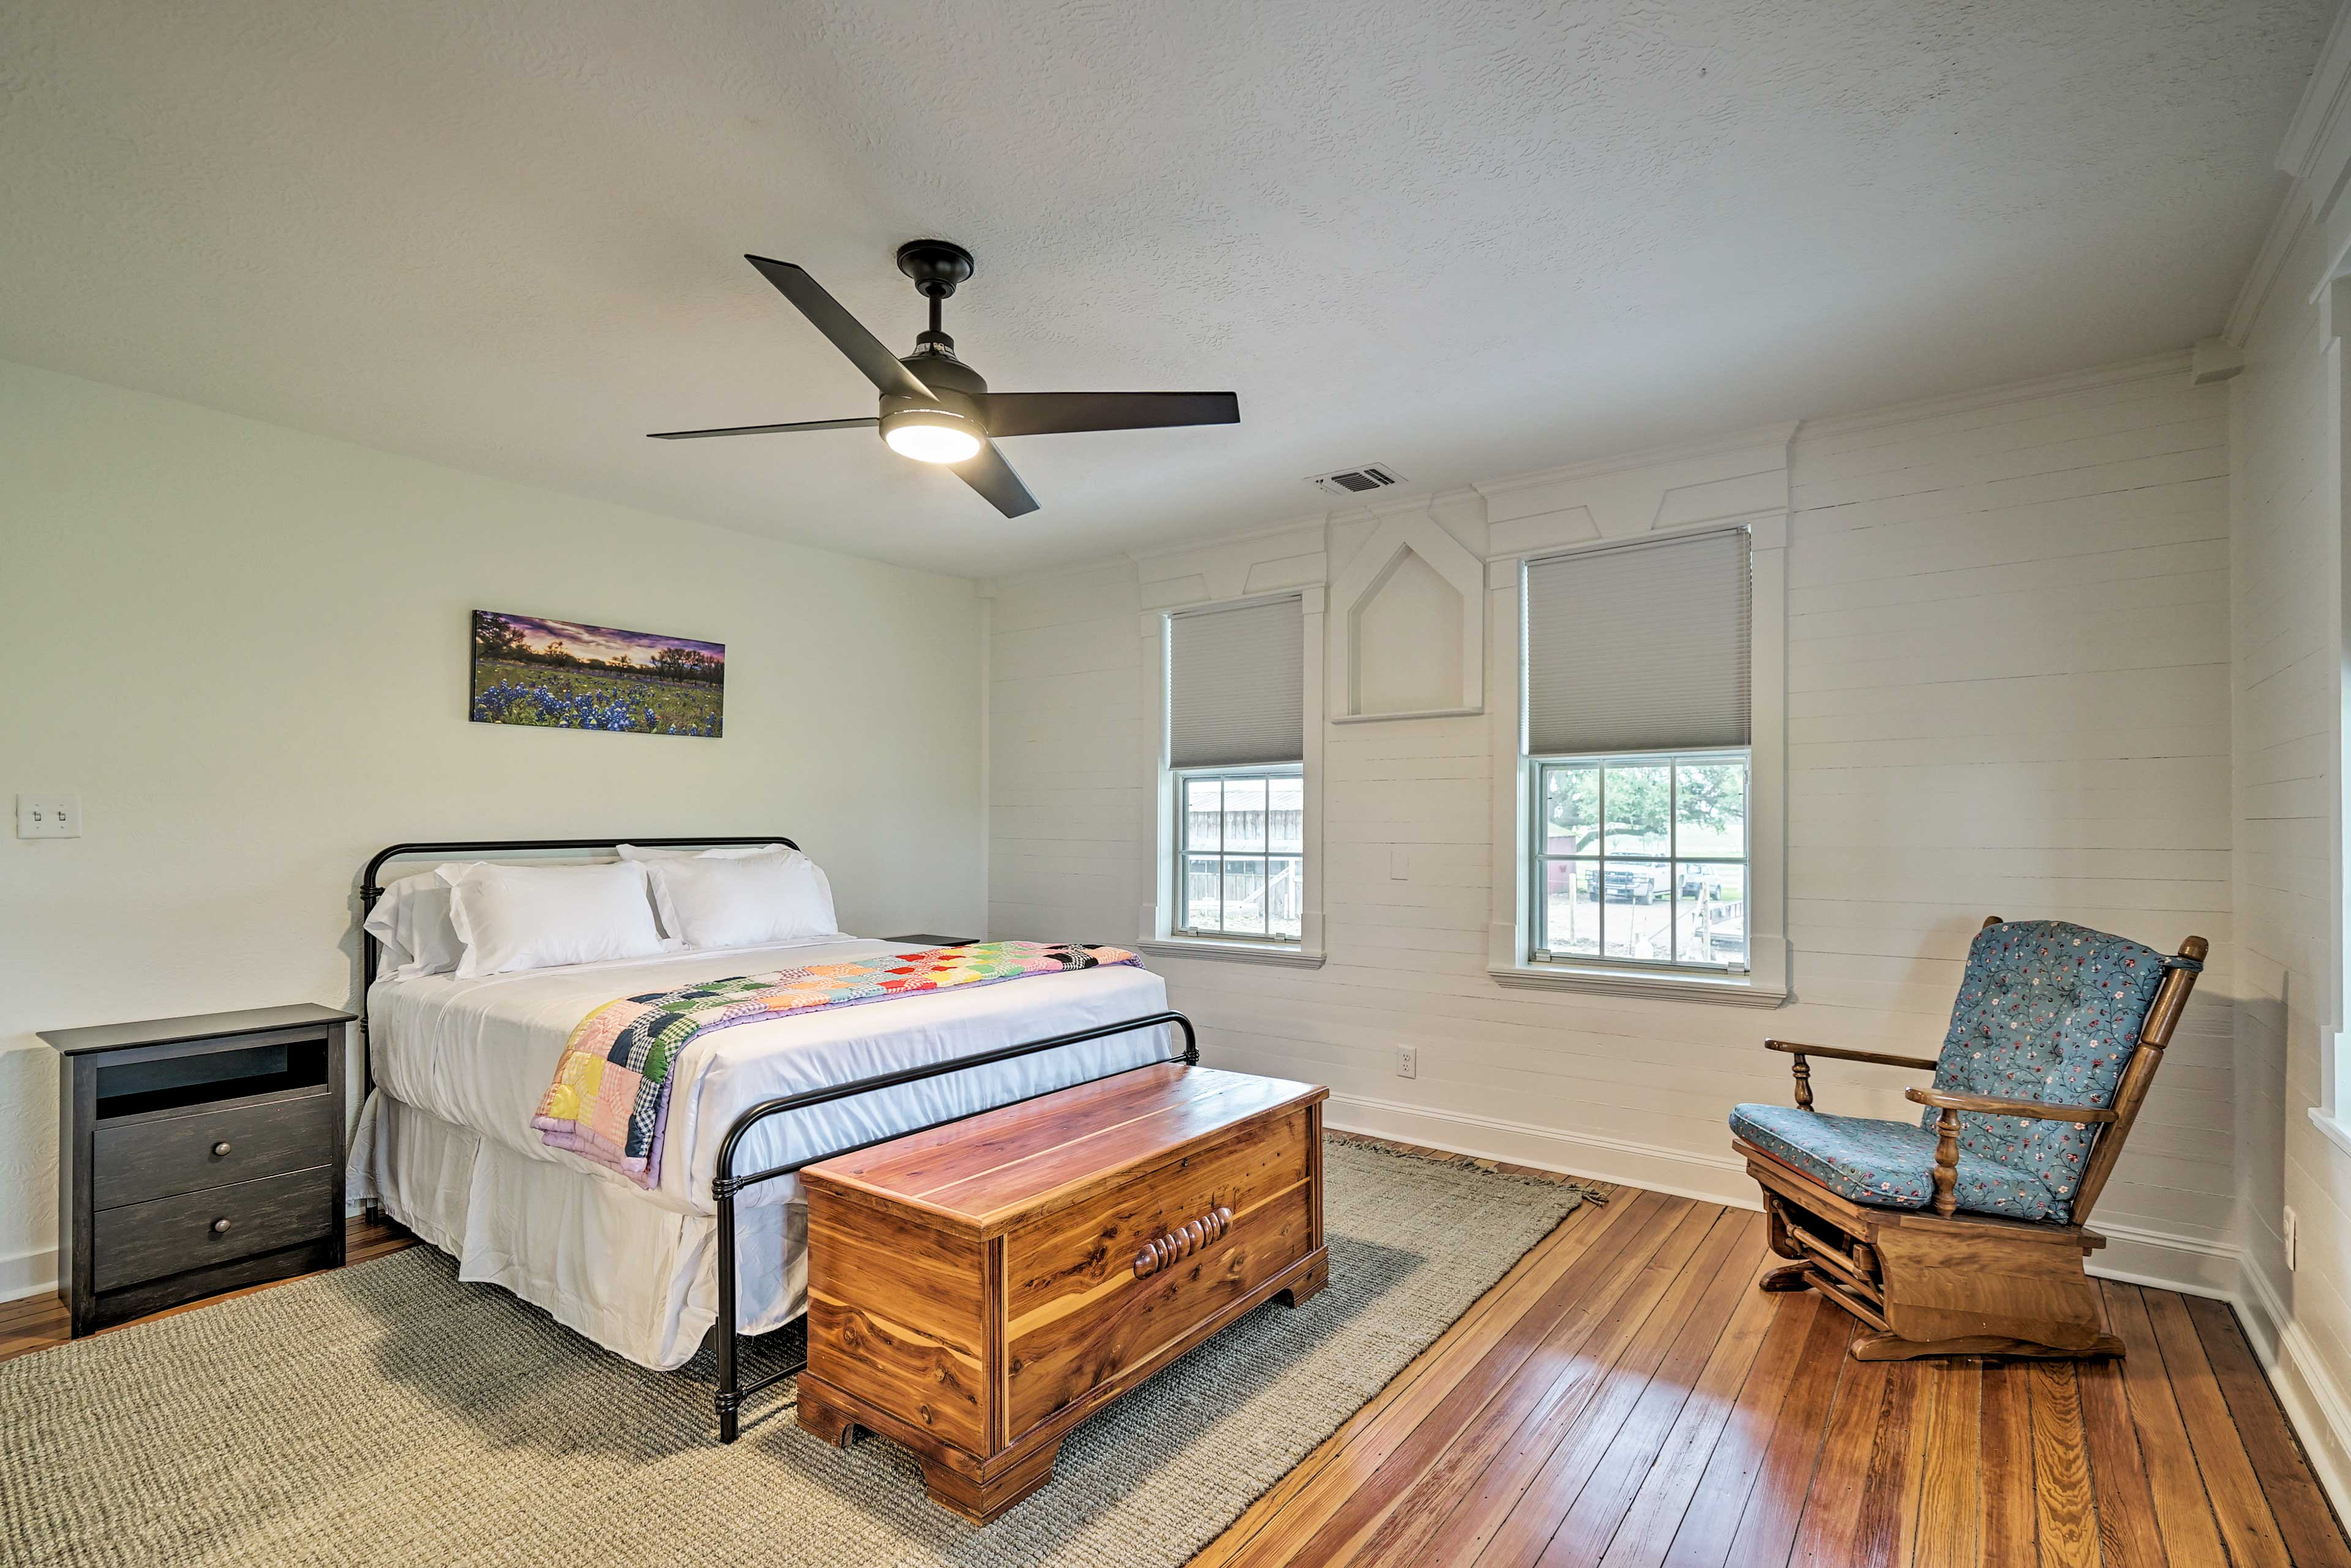 The first bedroom is well-suited for a group of 2.